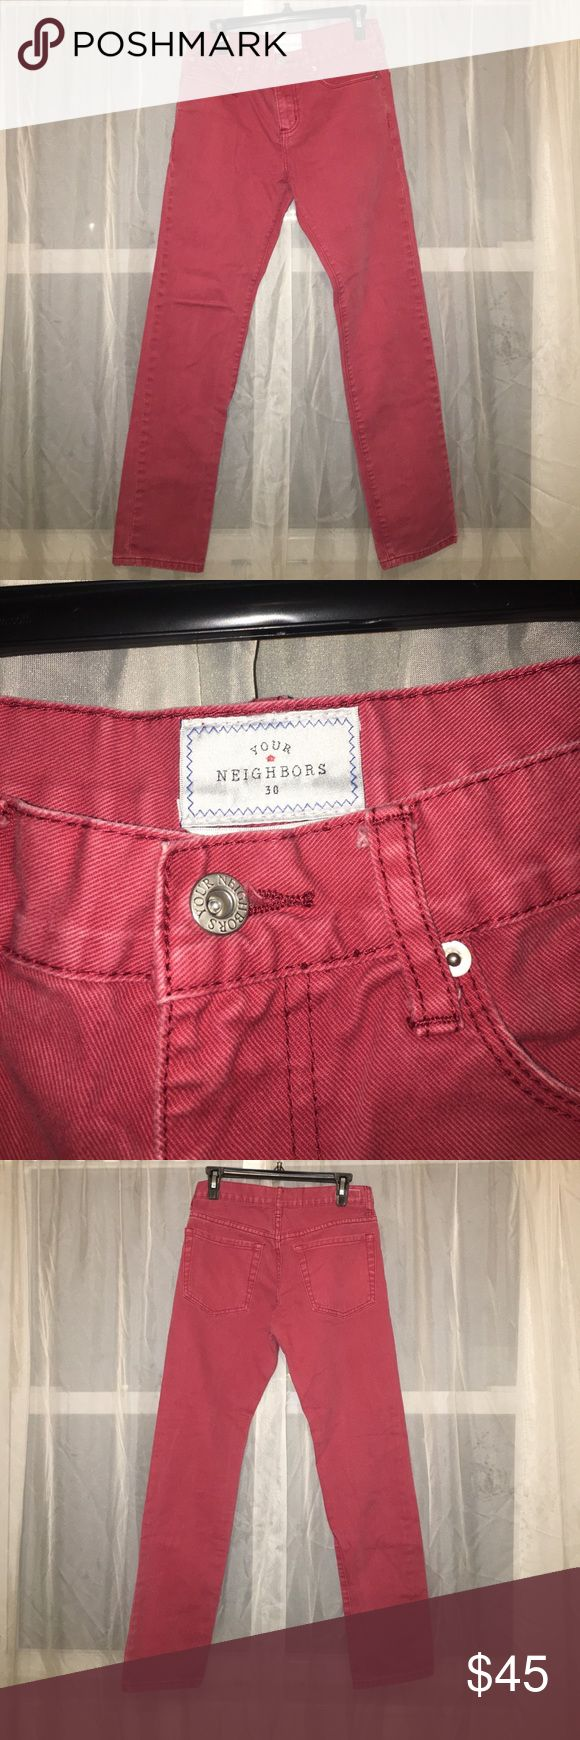 """NWOT UO YOUR NEIGHBORS SKINNY 30 From Urban Outfitters, NWOT, Your neighbors, size 30, Really neat """"washed out"""" effect. Great thick denim, excellent fit. Goes great polo shirts & sweaters, also a great cut for loafers and boots. Urban Outfitters Jeans Skinny"""